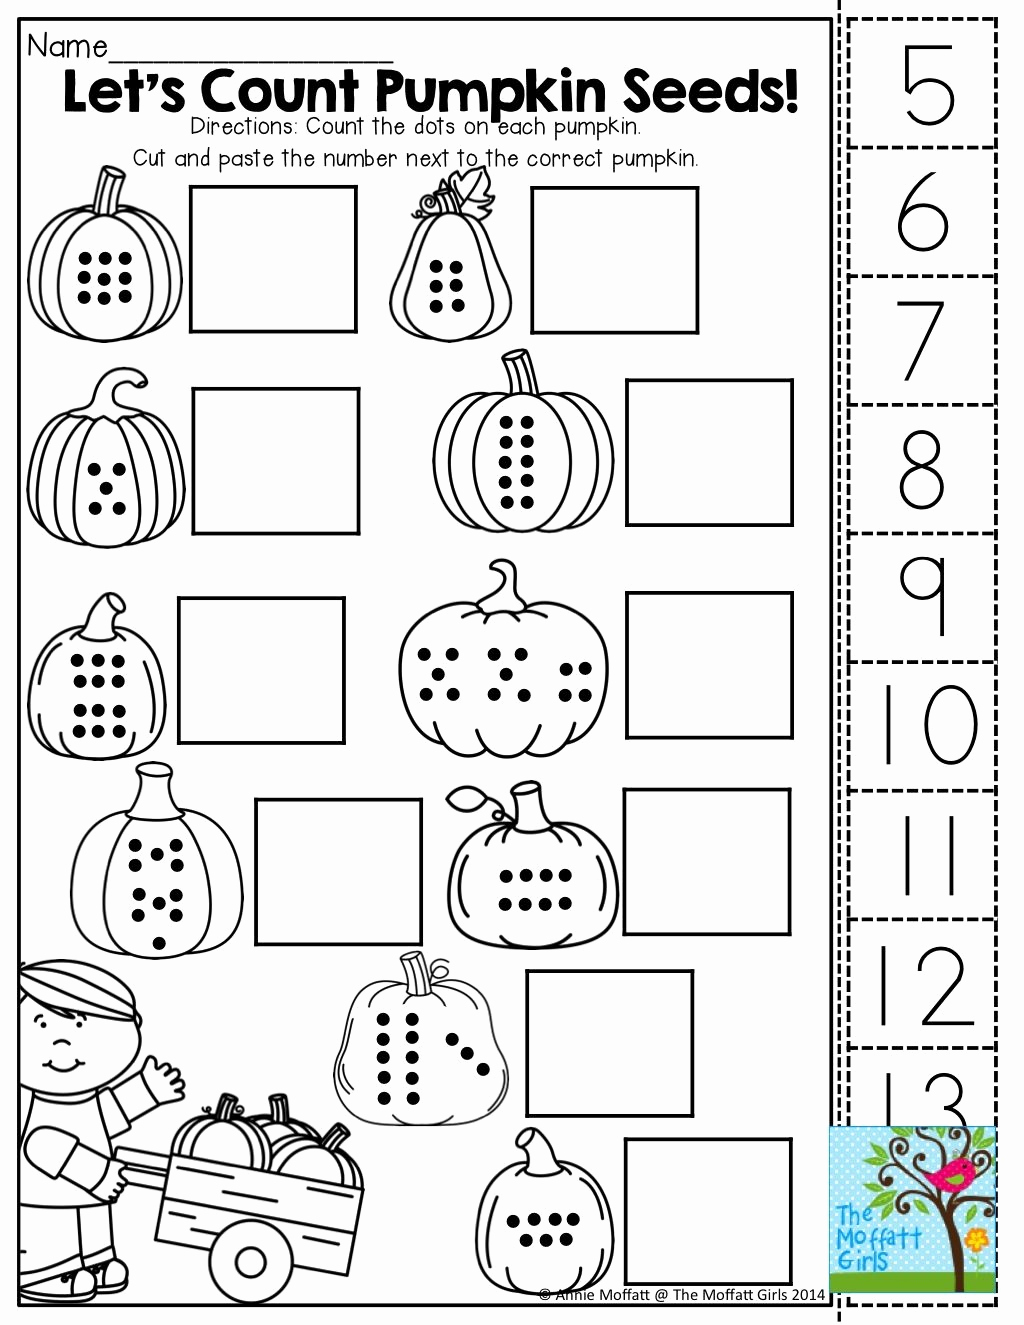 Cut and Paste Worksheets Free Lovely Free Printable Kindergarten Worksheets Cut and Paste